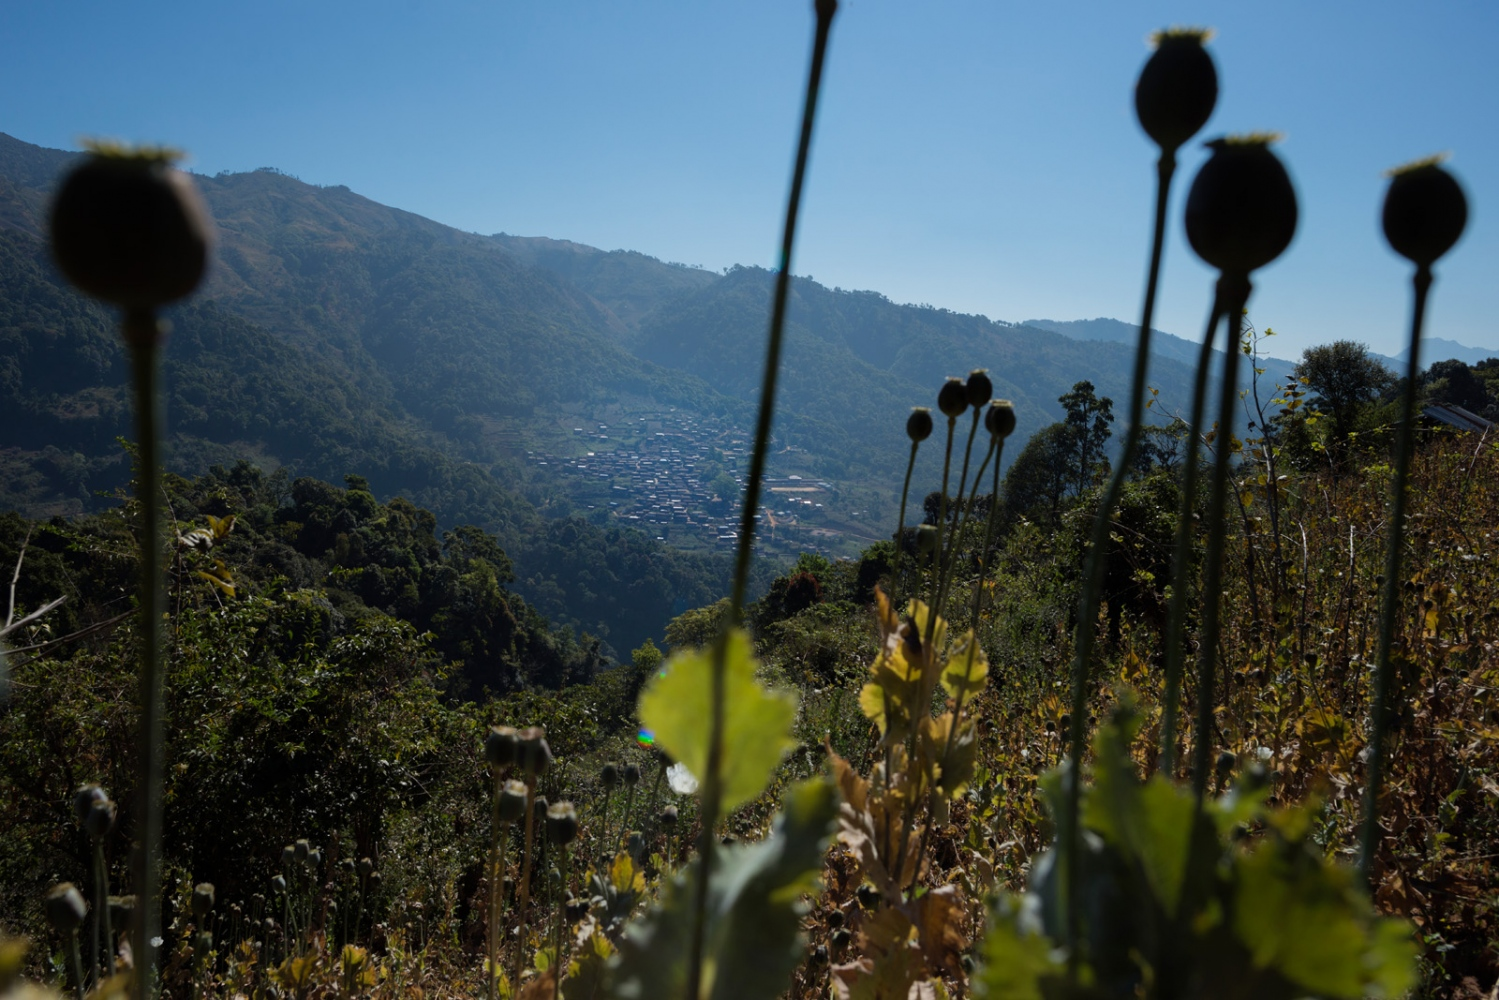 Poppy pods on a mountain side overlooking a village in the mountains of Shan State, Myanmar.